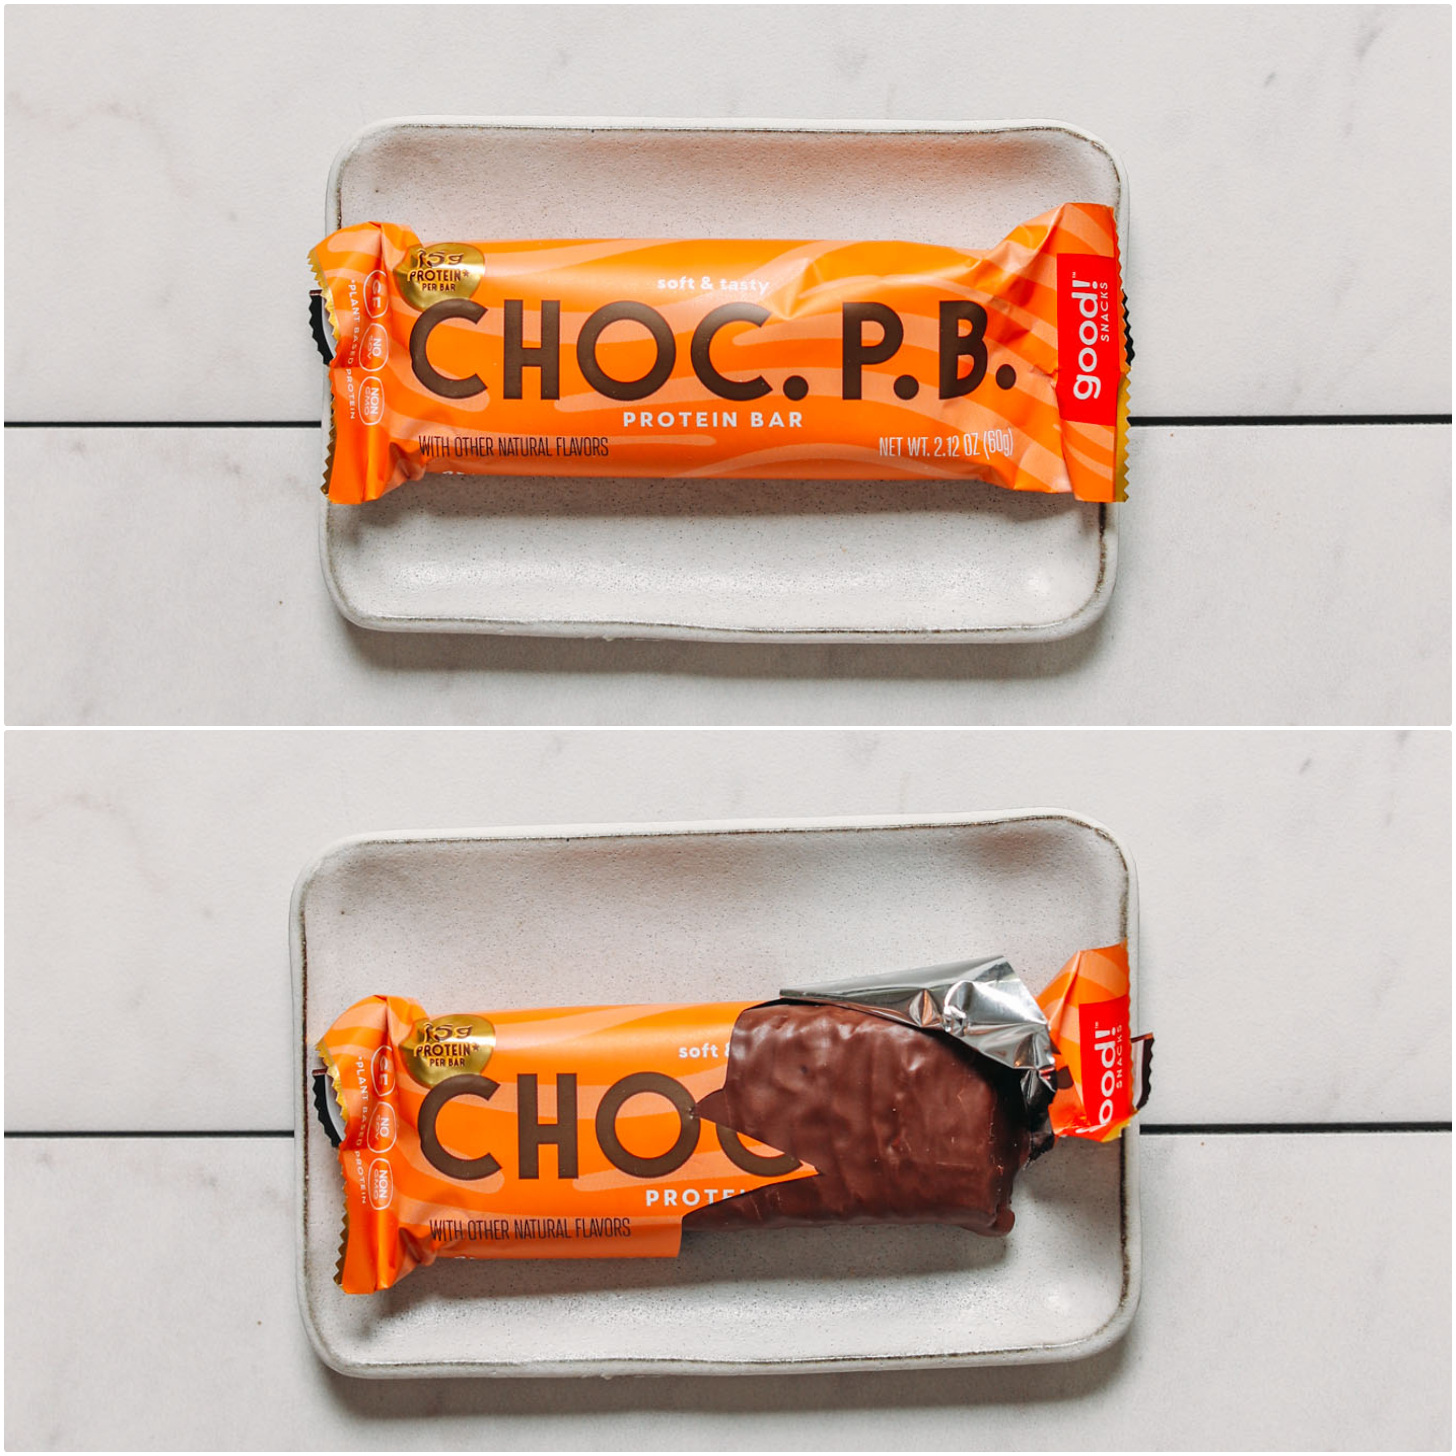 Closed and open package of a Good Snacks Chocolate Peanut Butter protein bar for our unbiased review